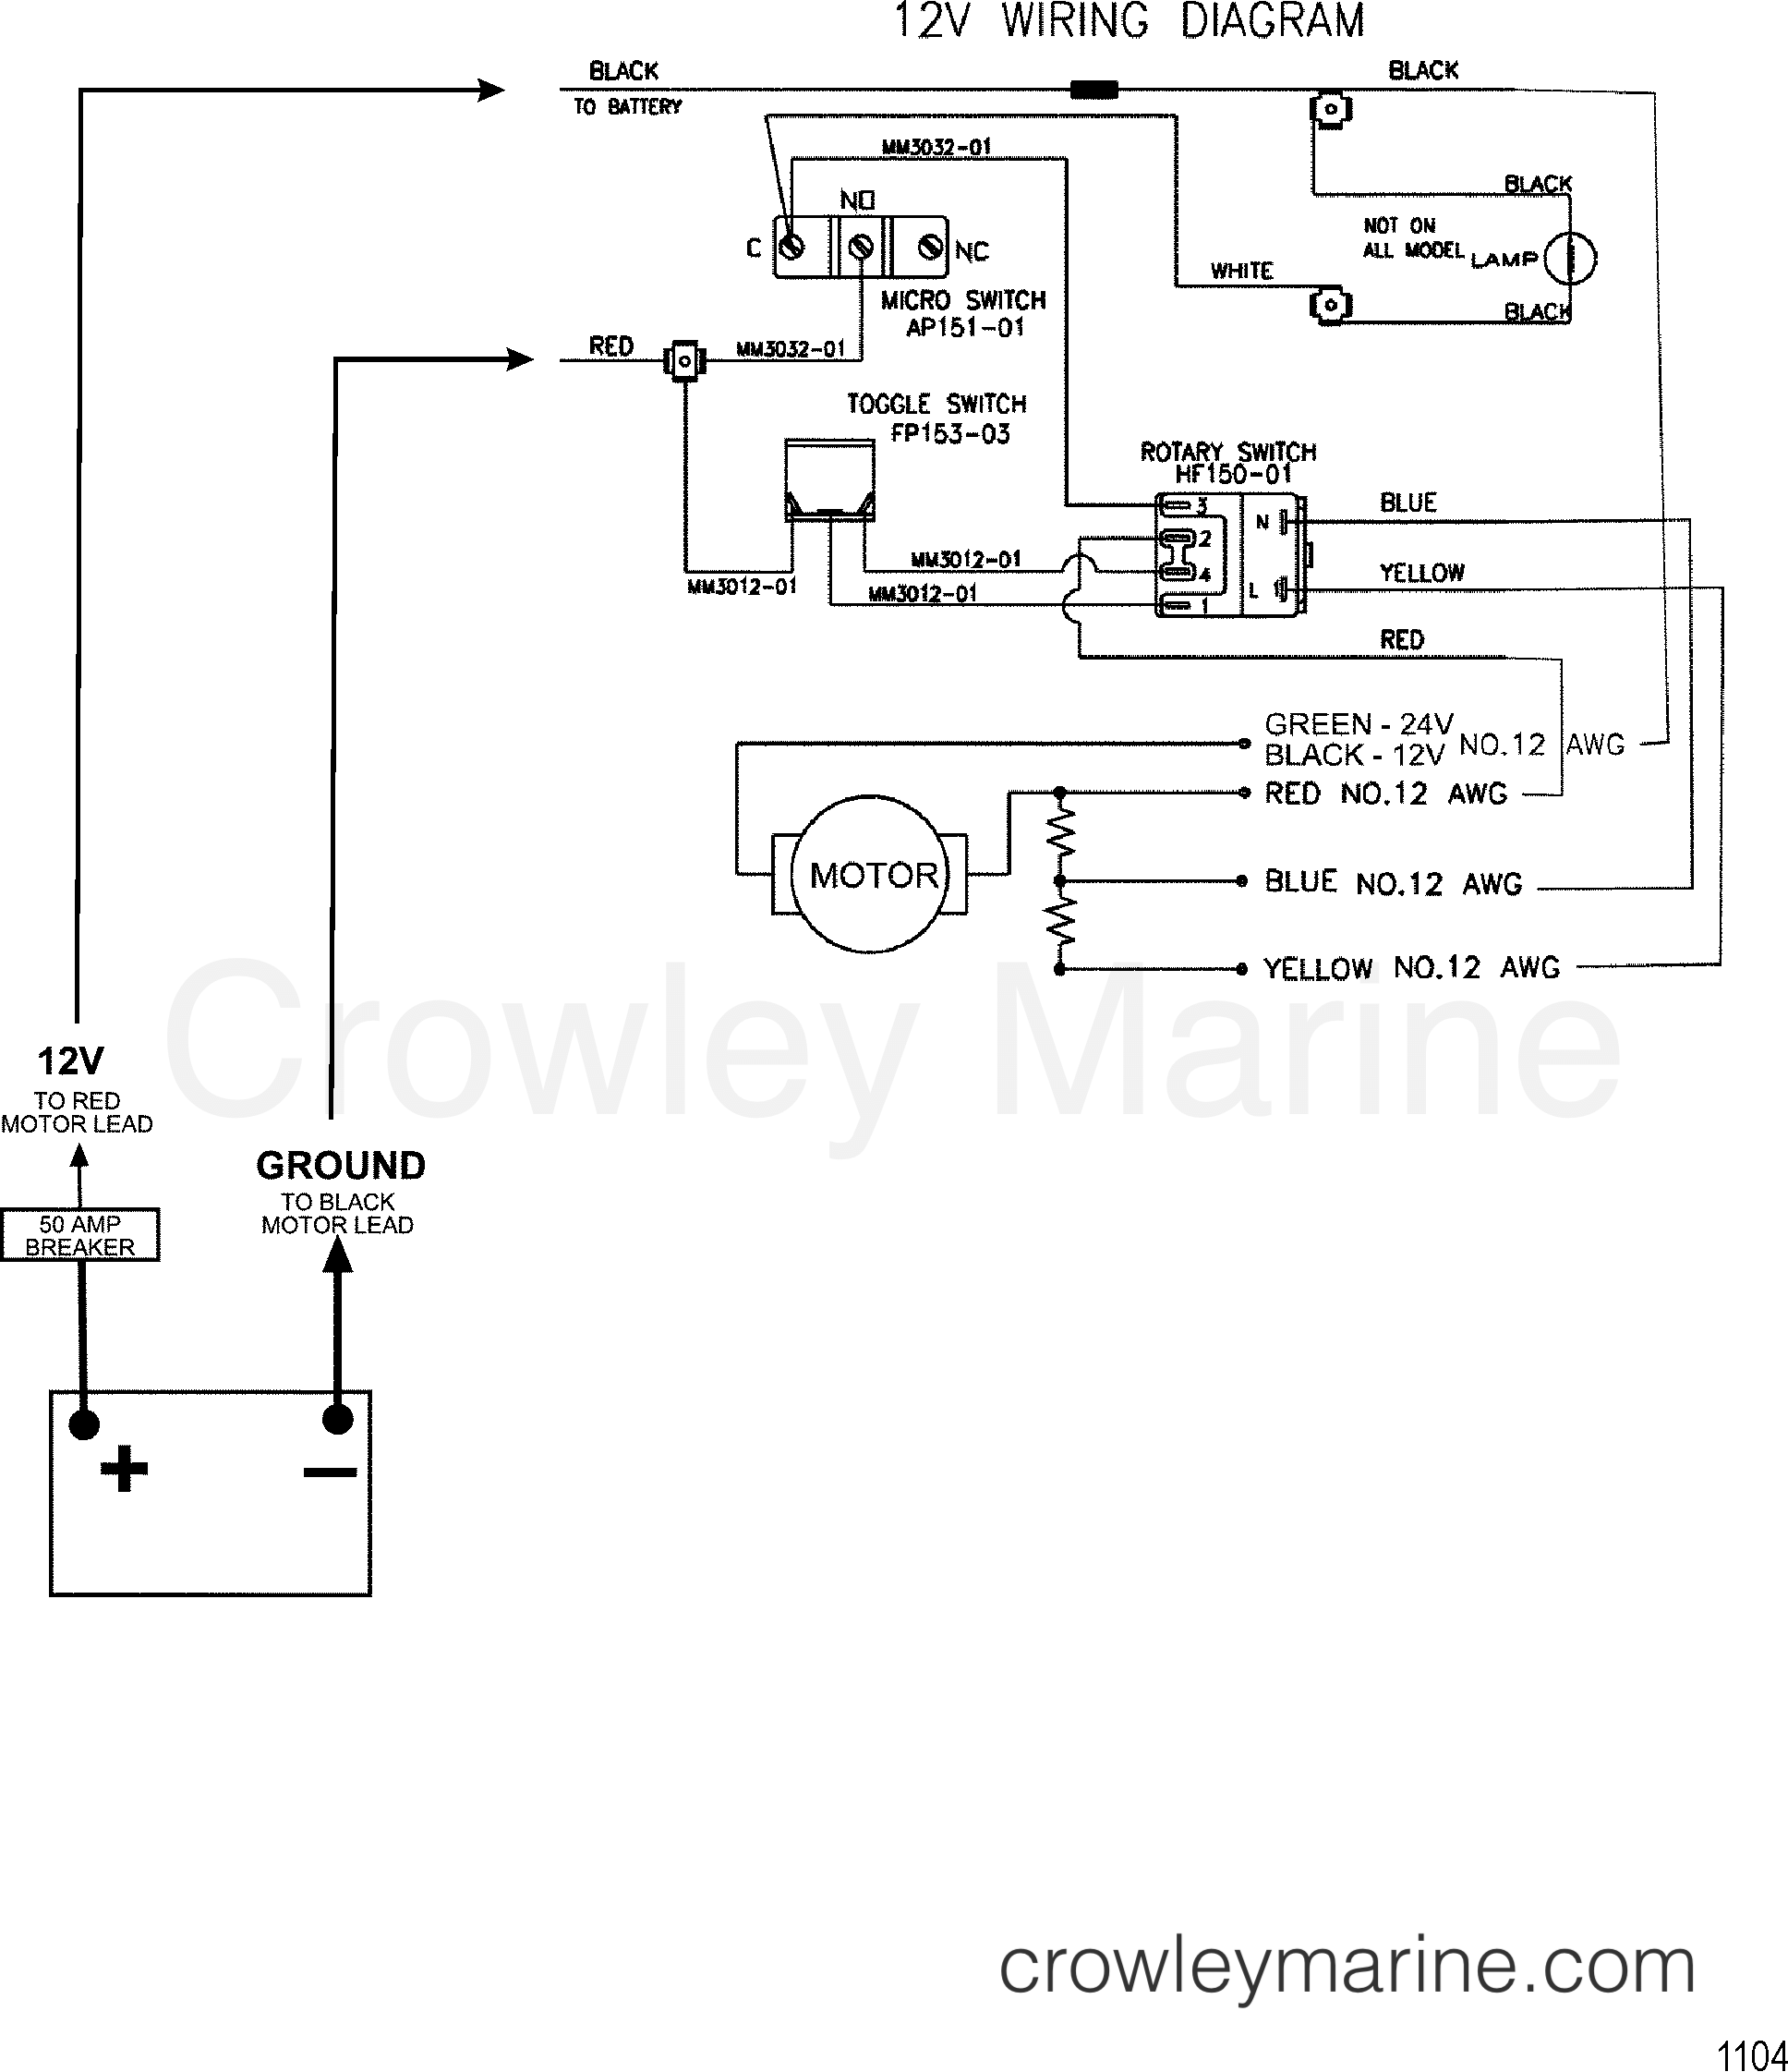 1999 MotorGuide [MOTORGUIDE] - 9767B4HV7 - WIRE DIAGRAM(MODEL 743) (12